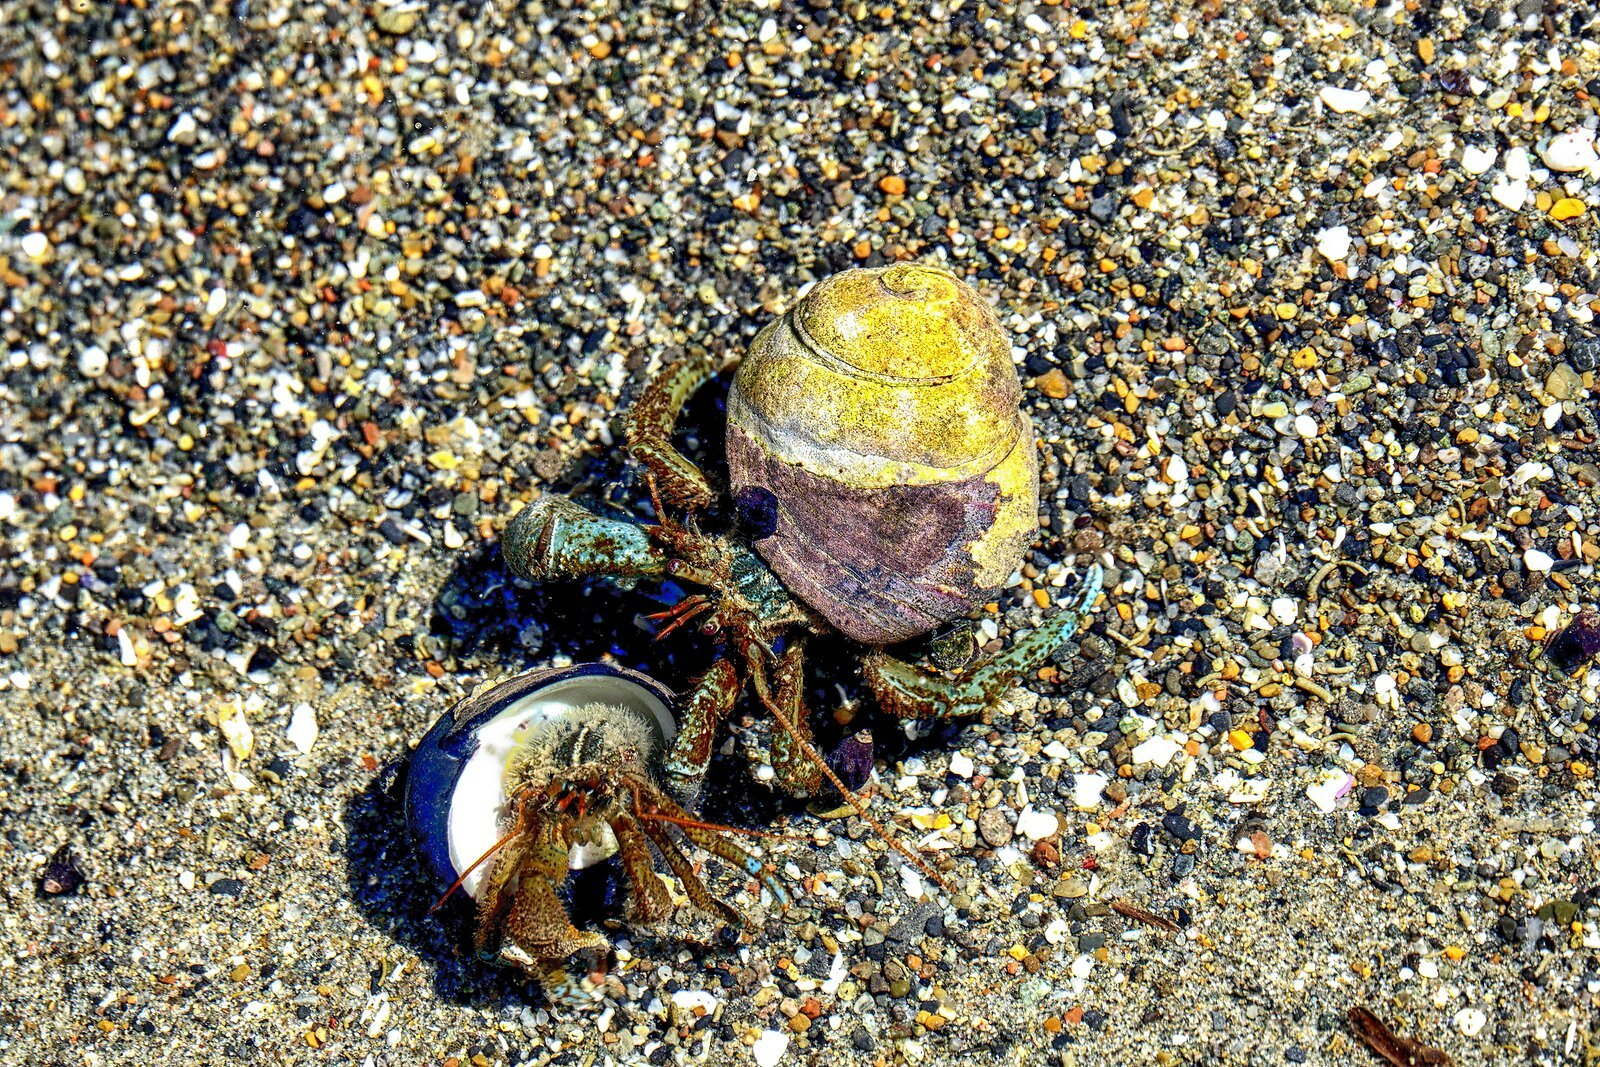 RX10_May18_21_2_hermit_crabs#4.jpg